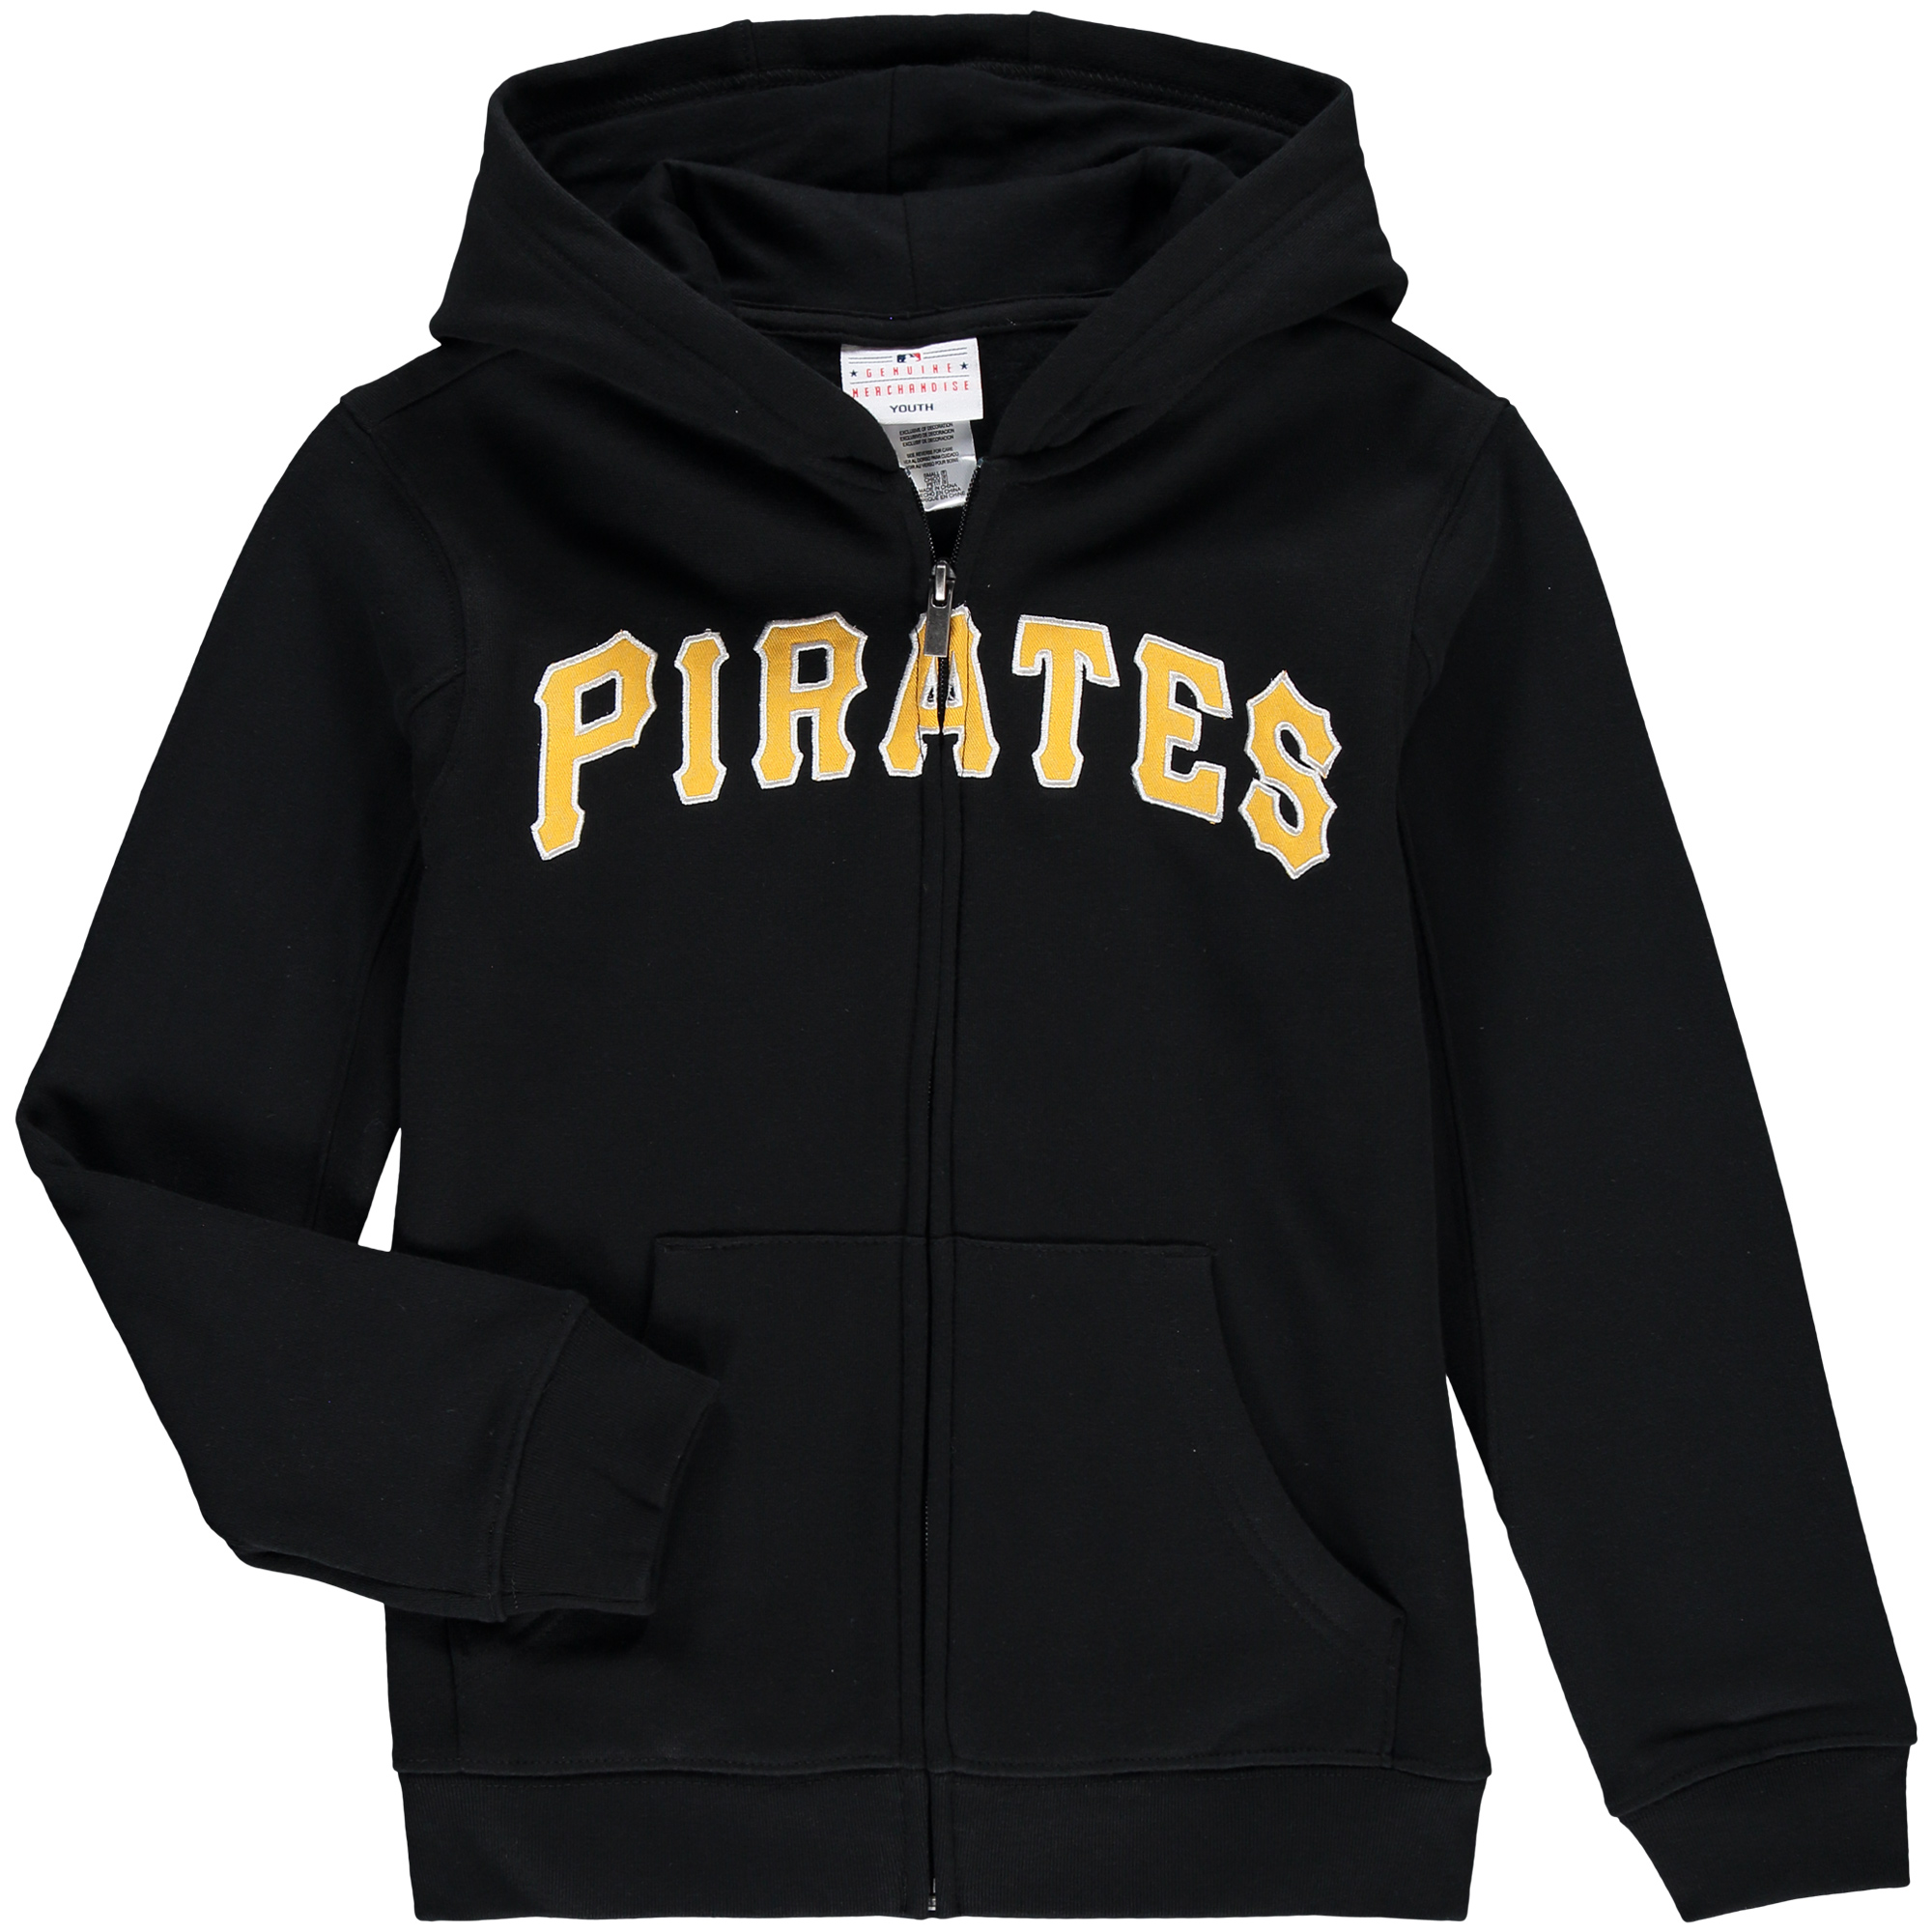 Pittsburgh Pirates Youth Wordmark Full-Zip Hoodie - Black